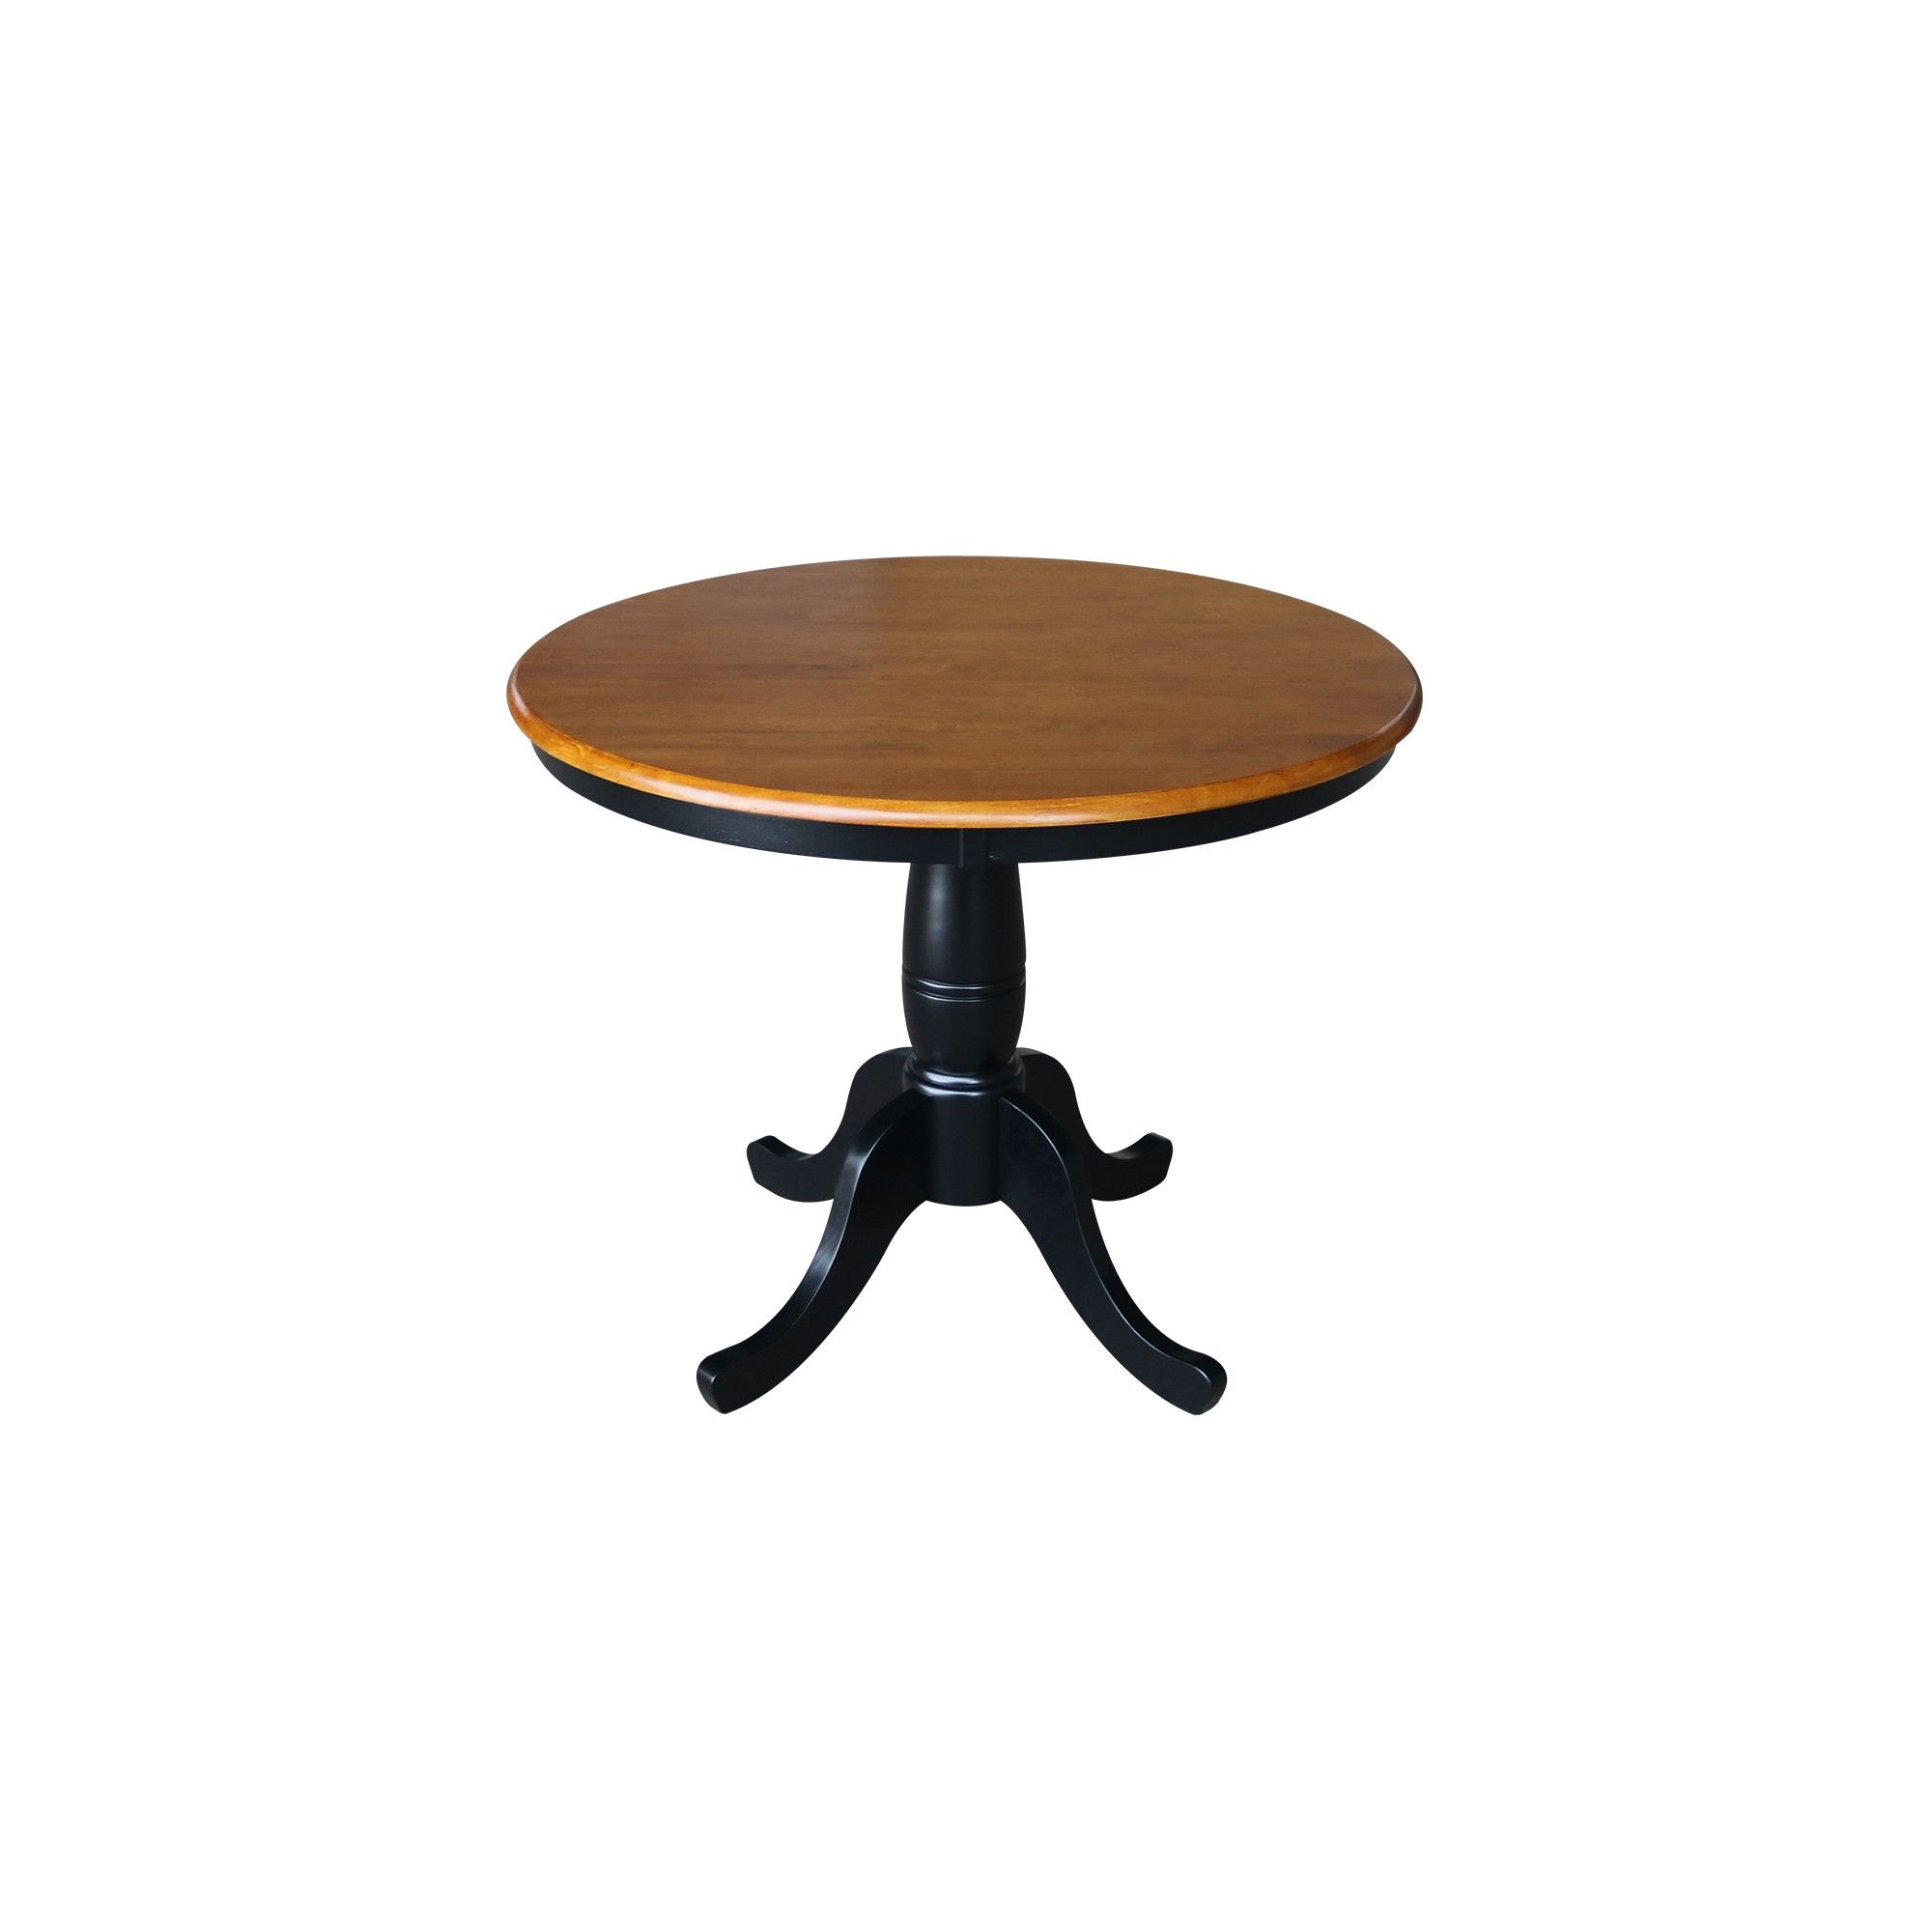 36 Round Top Pedestal Dining Table Black Red International Concepts Pedestal Dining Table Dining Table Black Dining Table